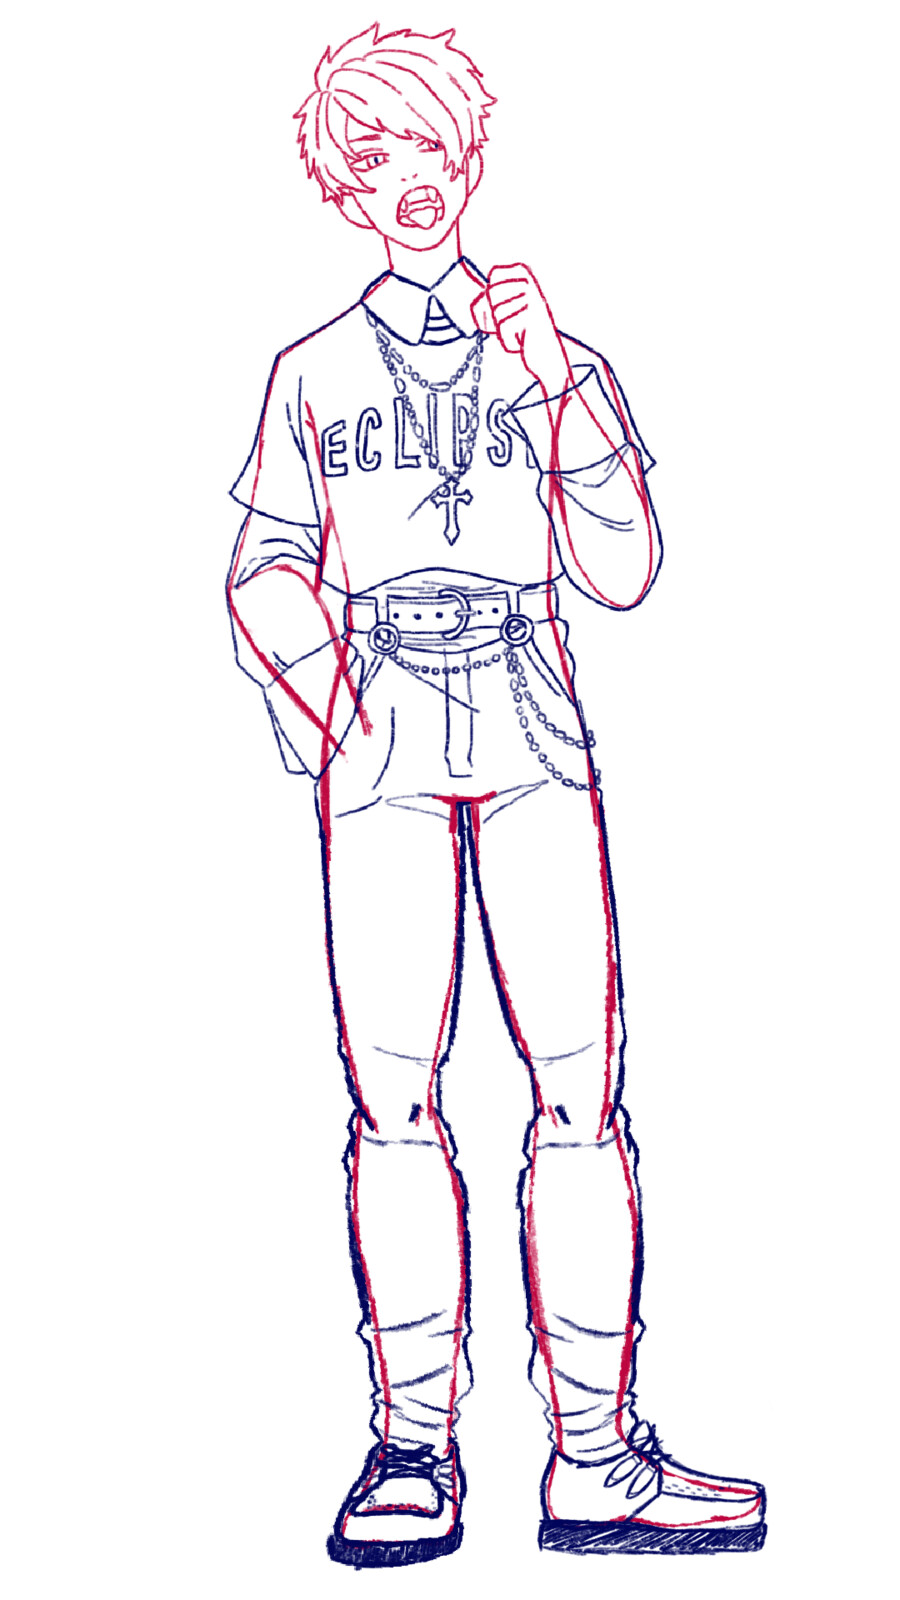 Full body concept sketch with original artists input